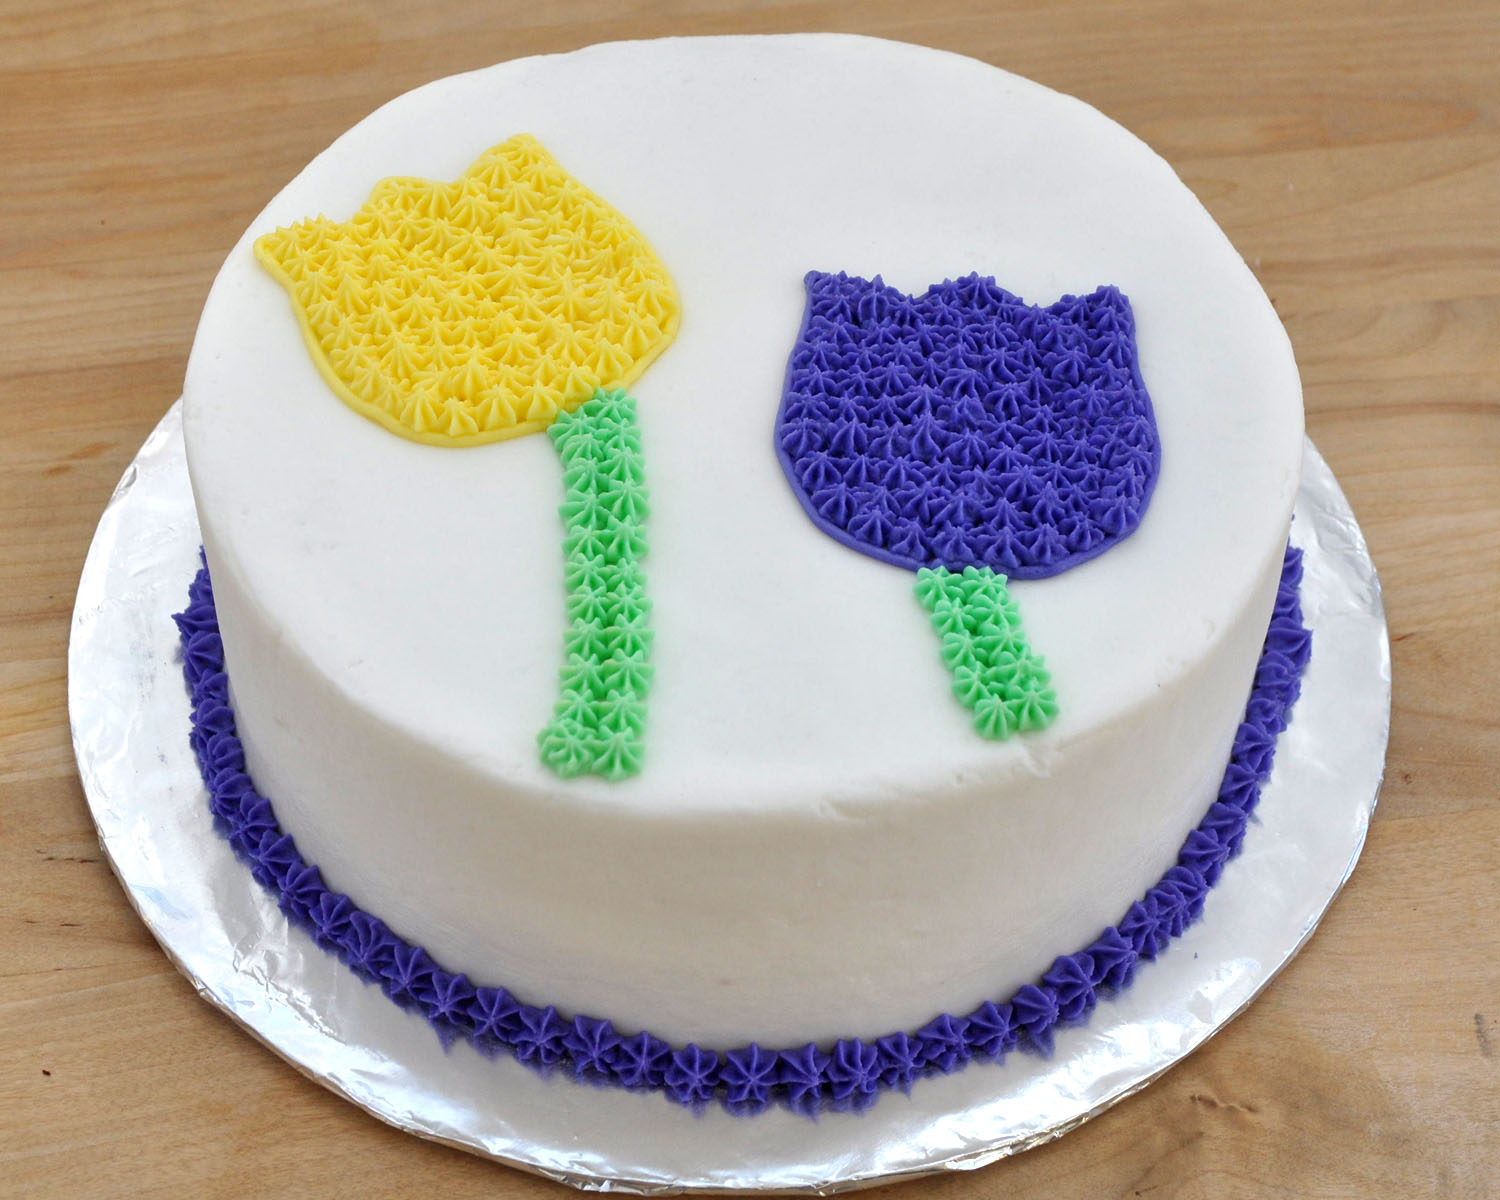 Cake Design Ideas Simple : Beki Cook s Cake Blog: Cake Decorating 101 - Easy Birthday ...